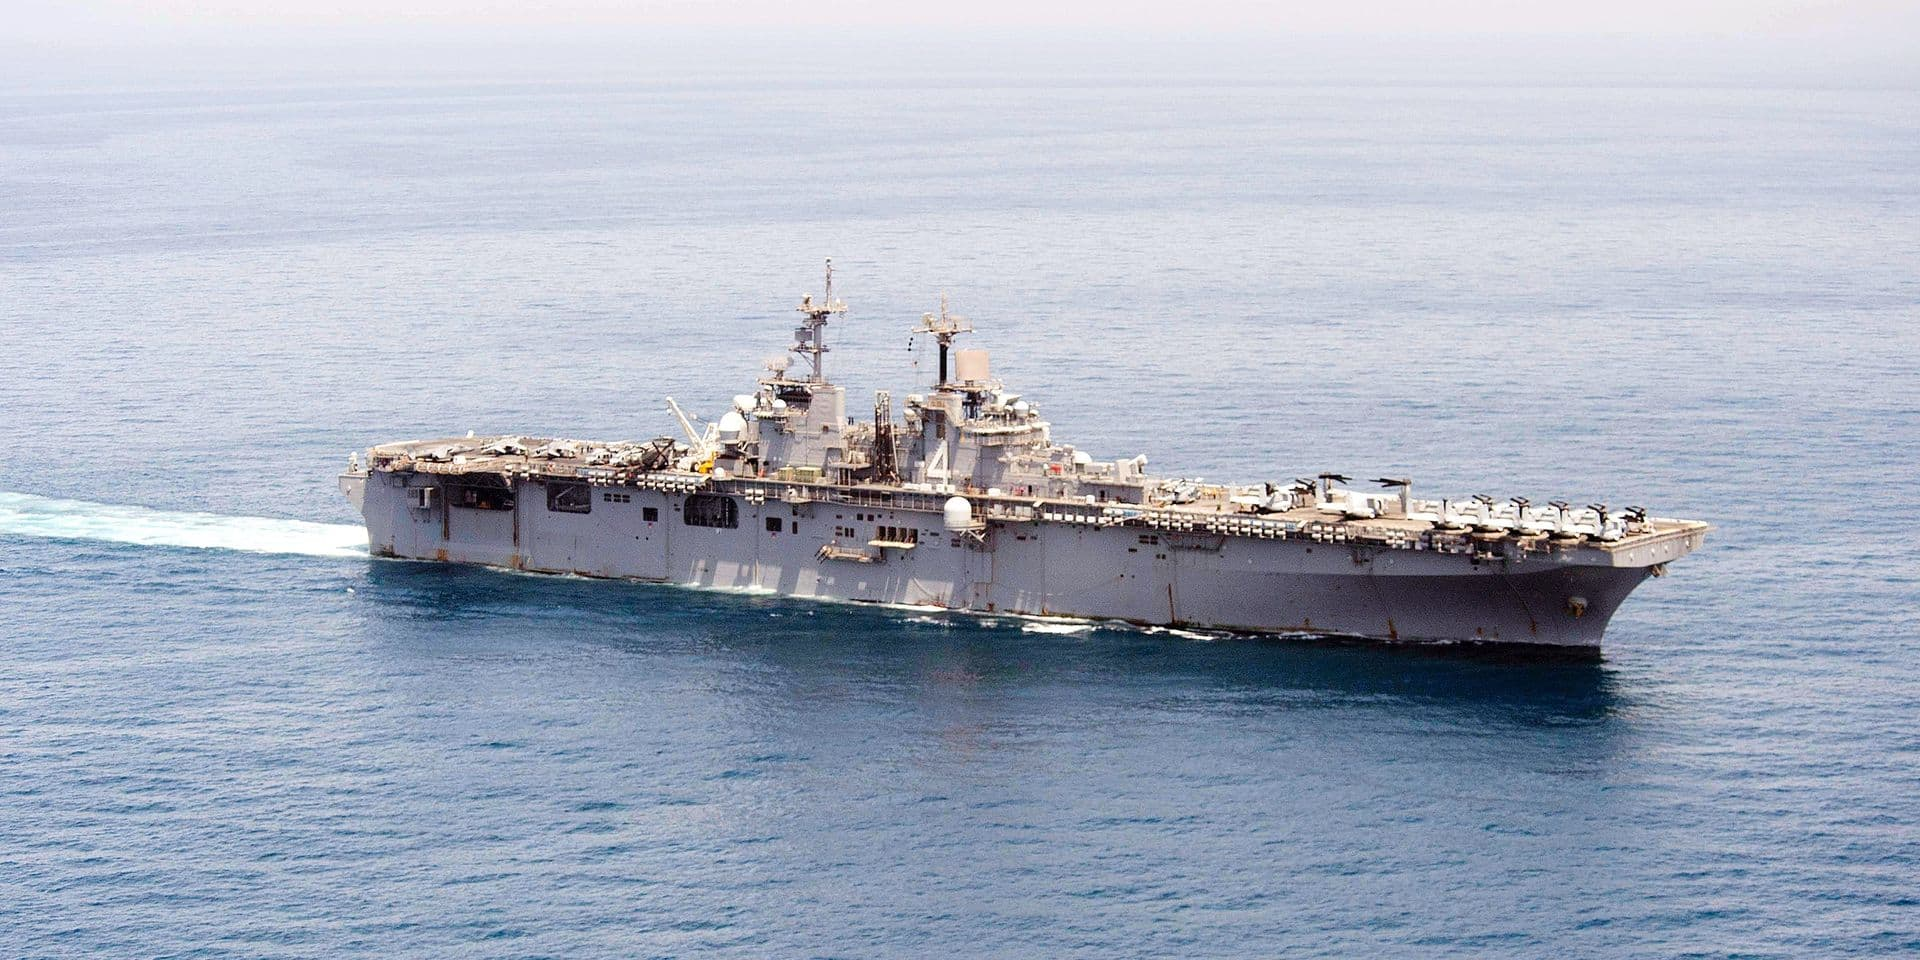 """In this image released by the US Nave, the amphibious assault ship USS Boxer transits The Gulf to conduct missions in support of Operation Inherent Resolve. - Boxer is the flagship for the Boxer Amphibious Ready Group and, with the embarked 13th Marine Expeditionary Unit, is deployed in support of maritime security operations and theater security cooperation efforts in the US 5th Fleet area of operations. (Photo by Craig Z. Rodarte / Navy Media Content Operations (N / AFP) / RESTRICTED TO EDITORIAL USE - MANDATORY CREDIT """"AFP PHOTO /US NAVY/Mass Communication Specialist 3rd Class Craig Z. Rodarte"""" - NO MARKETING NO ADVERTISING CAMPAIGNS - DISTRIBUTED AS A SERVICE TO CLIENTS"""